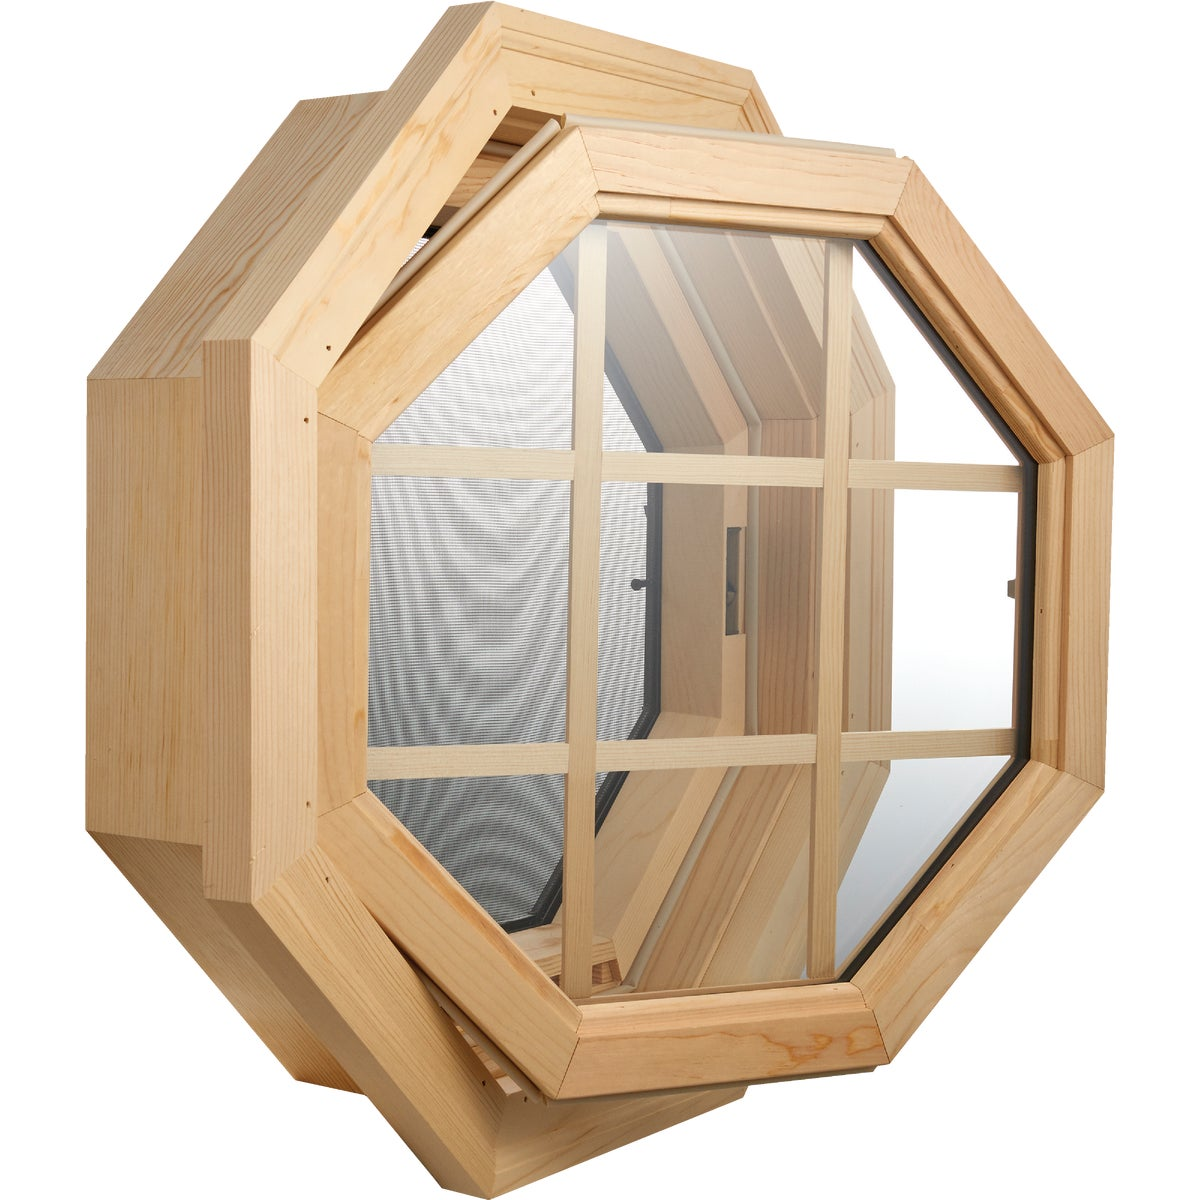 WD OCTAGON VENT WINDOW